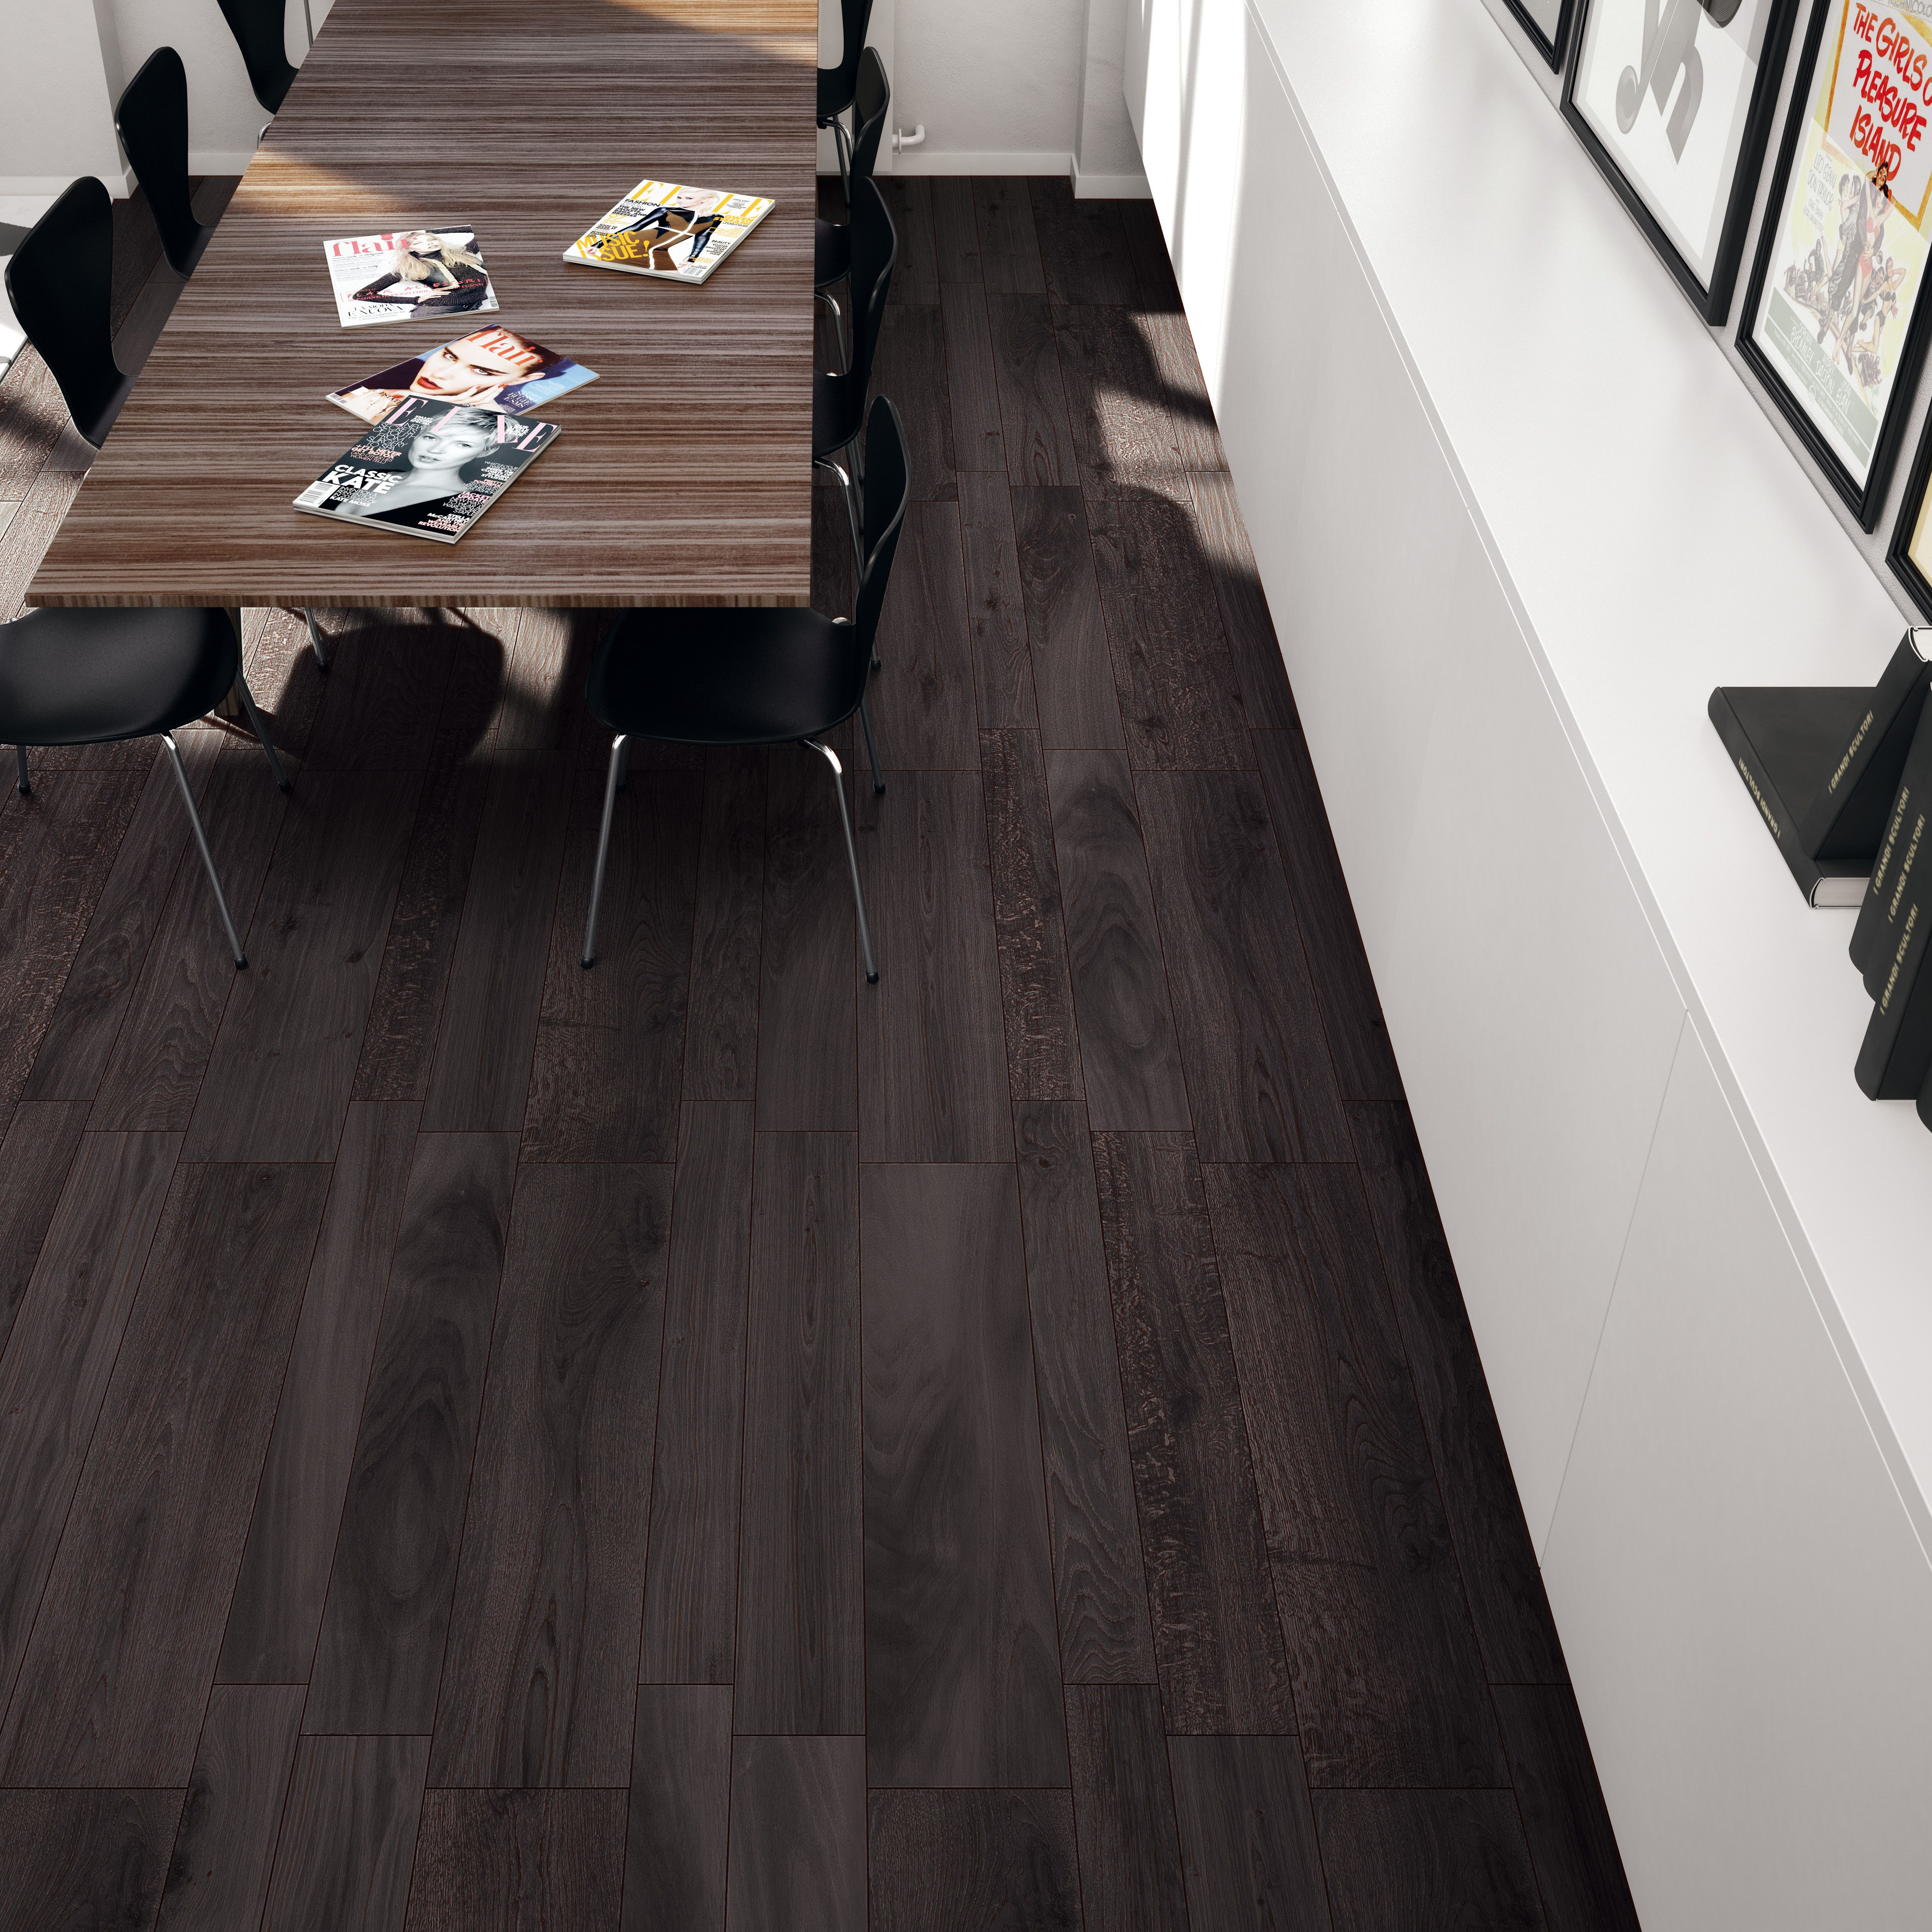 Sassuolo atelier wenge wood porcelain tile in 4x36 6x36 and 9x36 sassuolo atelier wenge wood porcelain tile in 4x36 6x36 and 9x36 size combination dailygadgetfo Choice Image